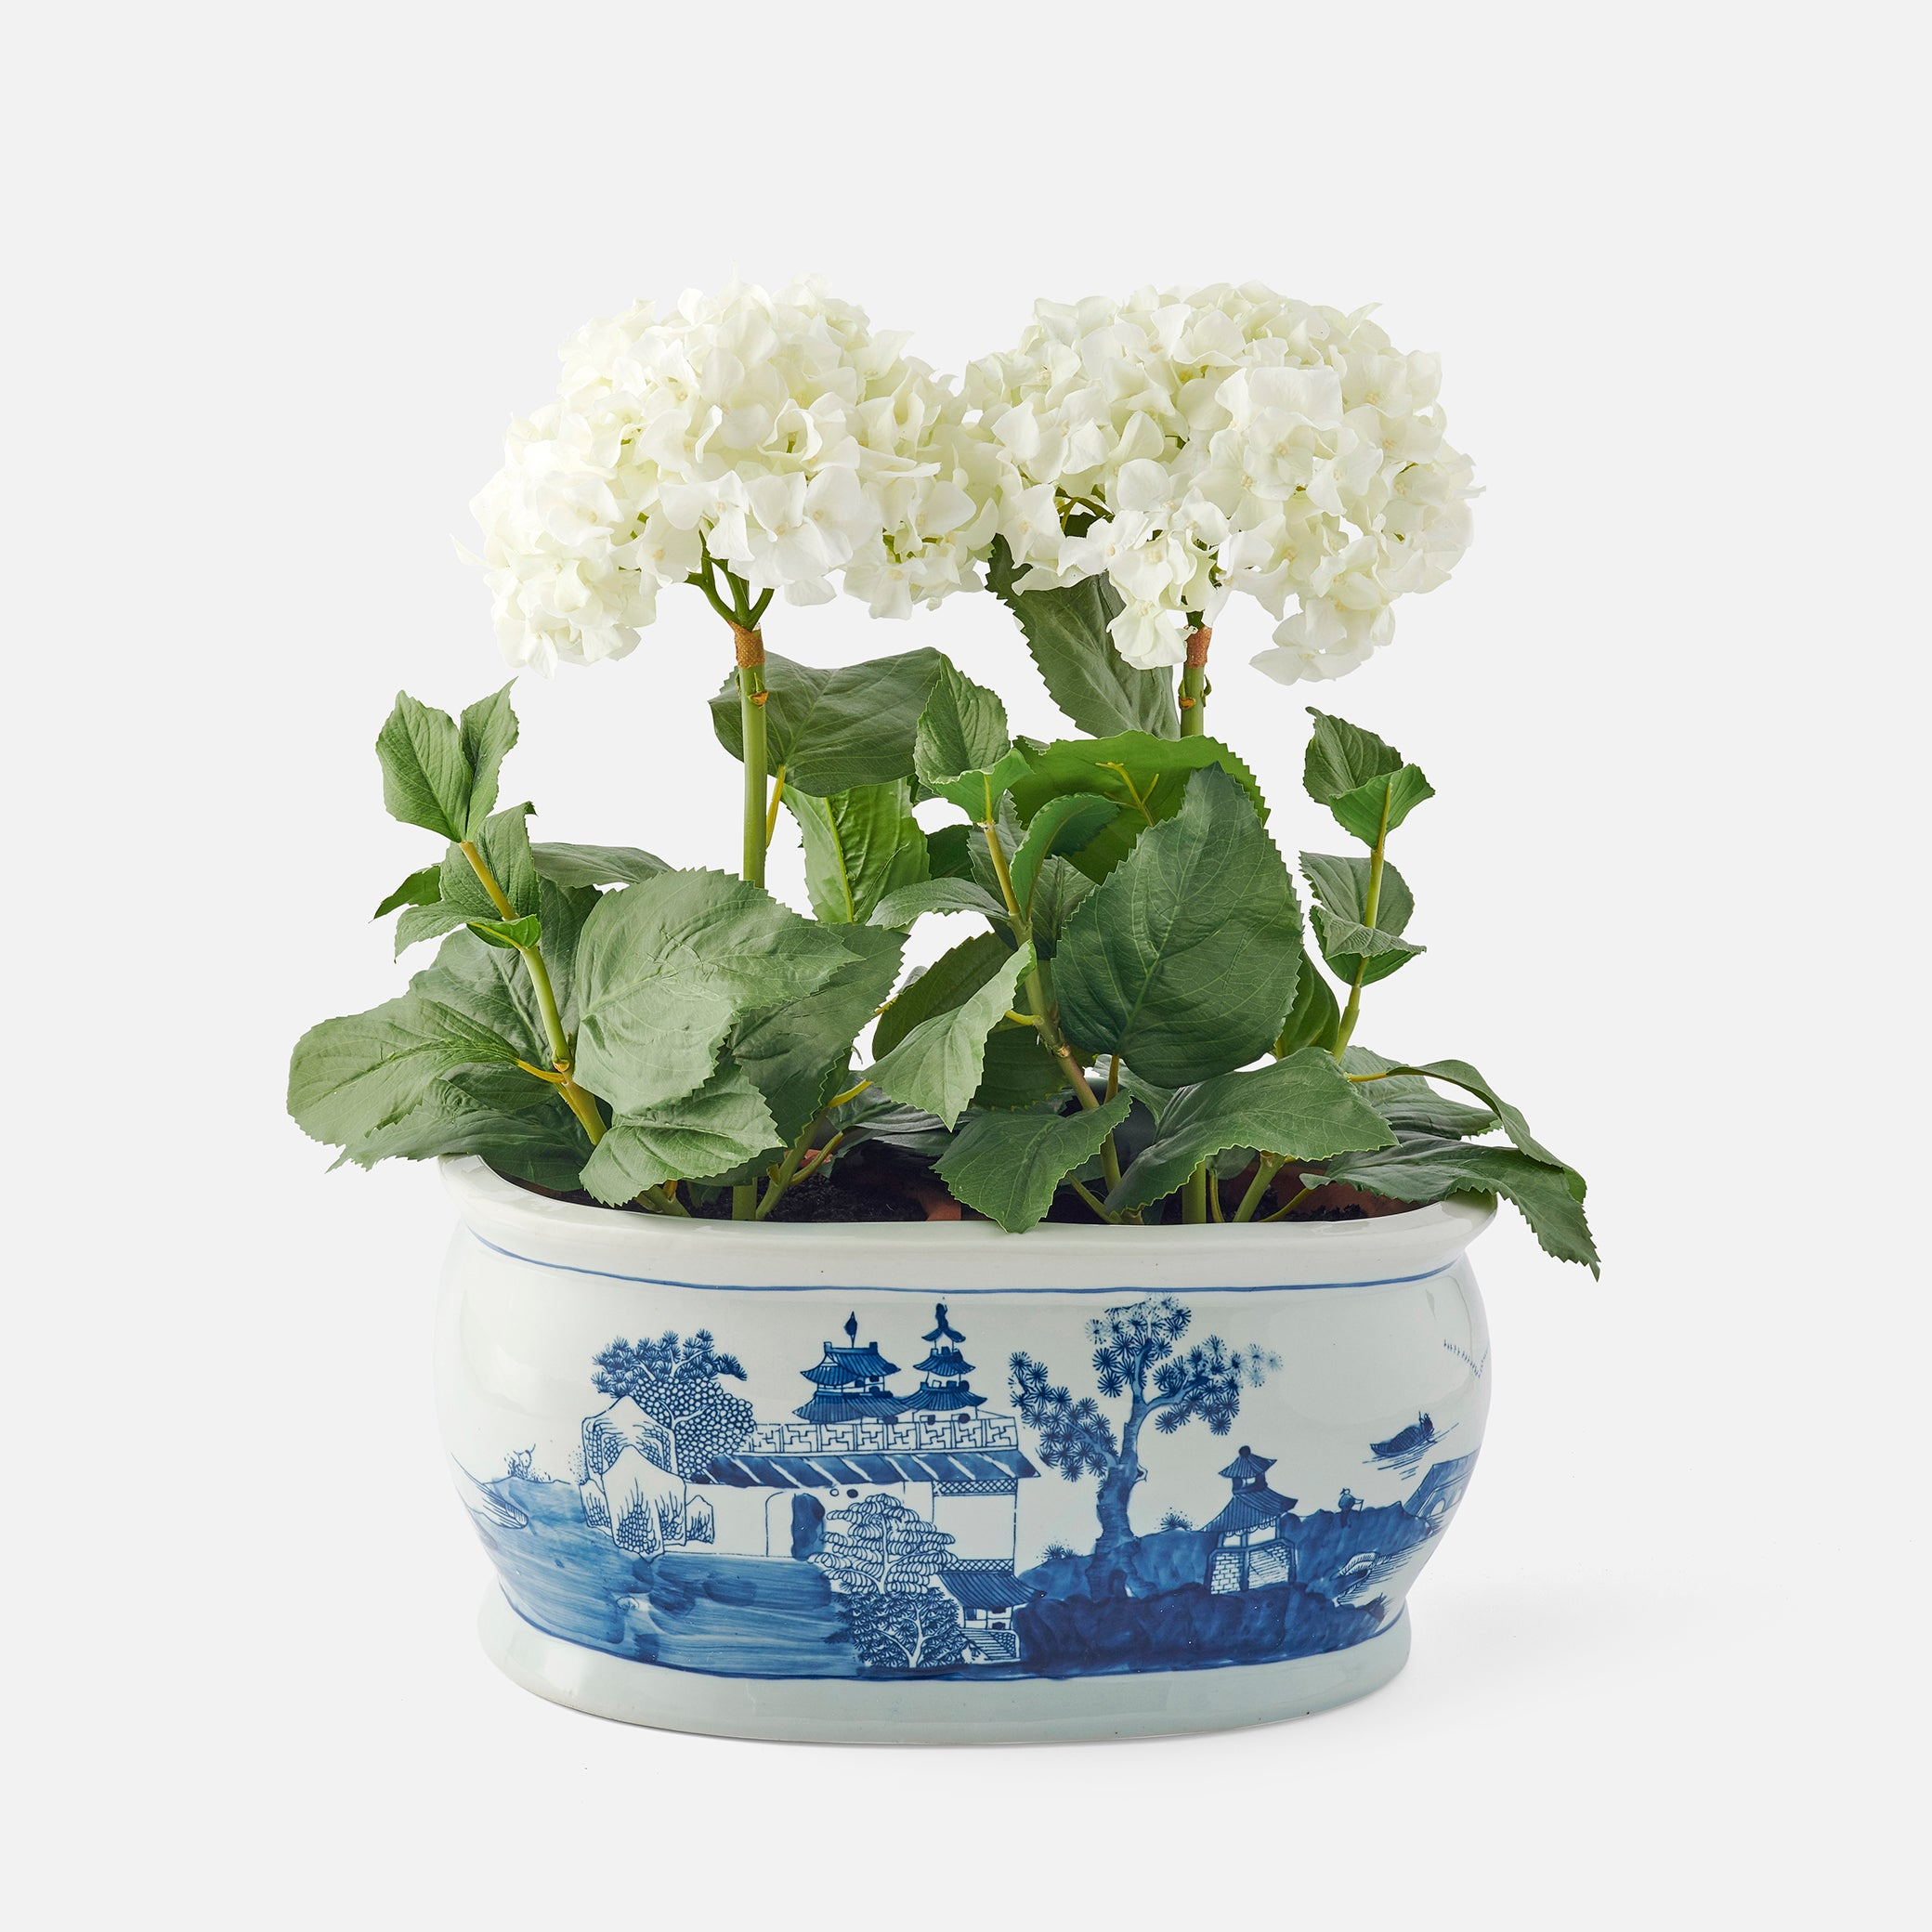 Large Blue and White Oval Planter